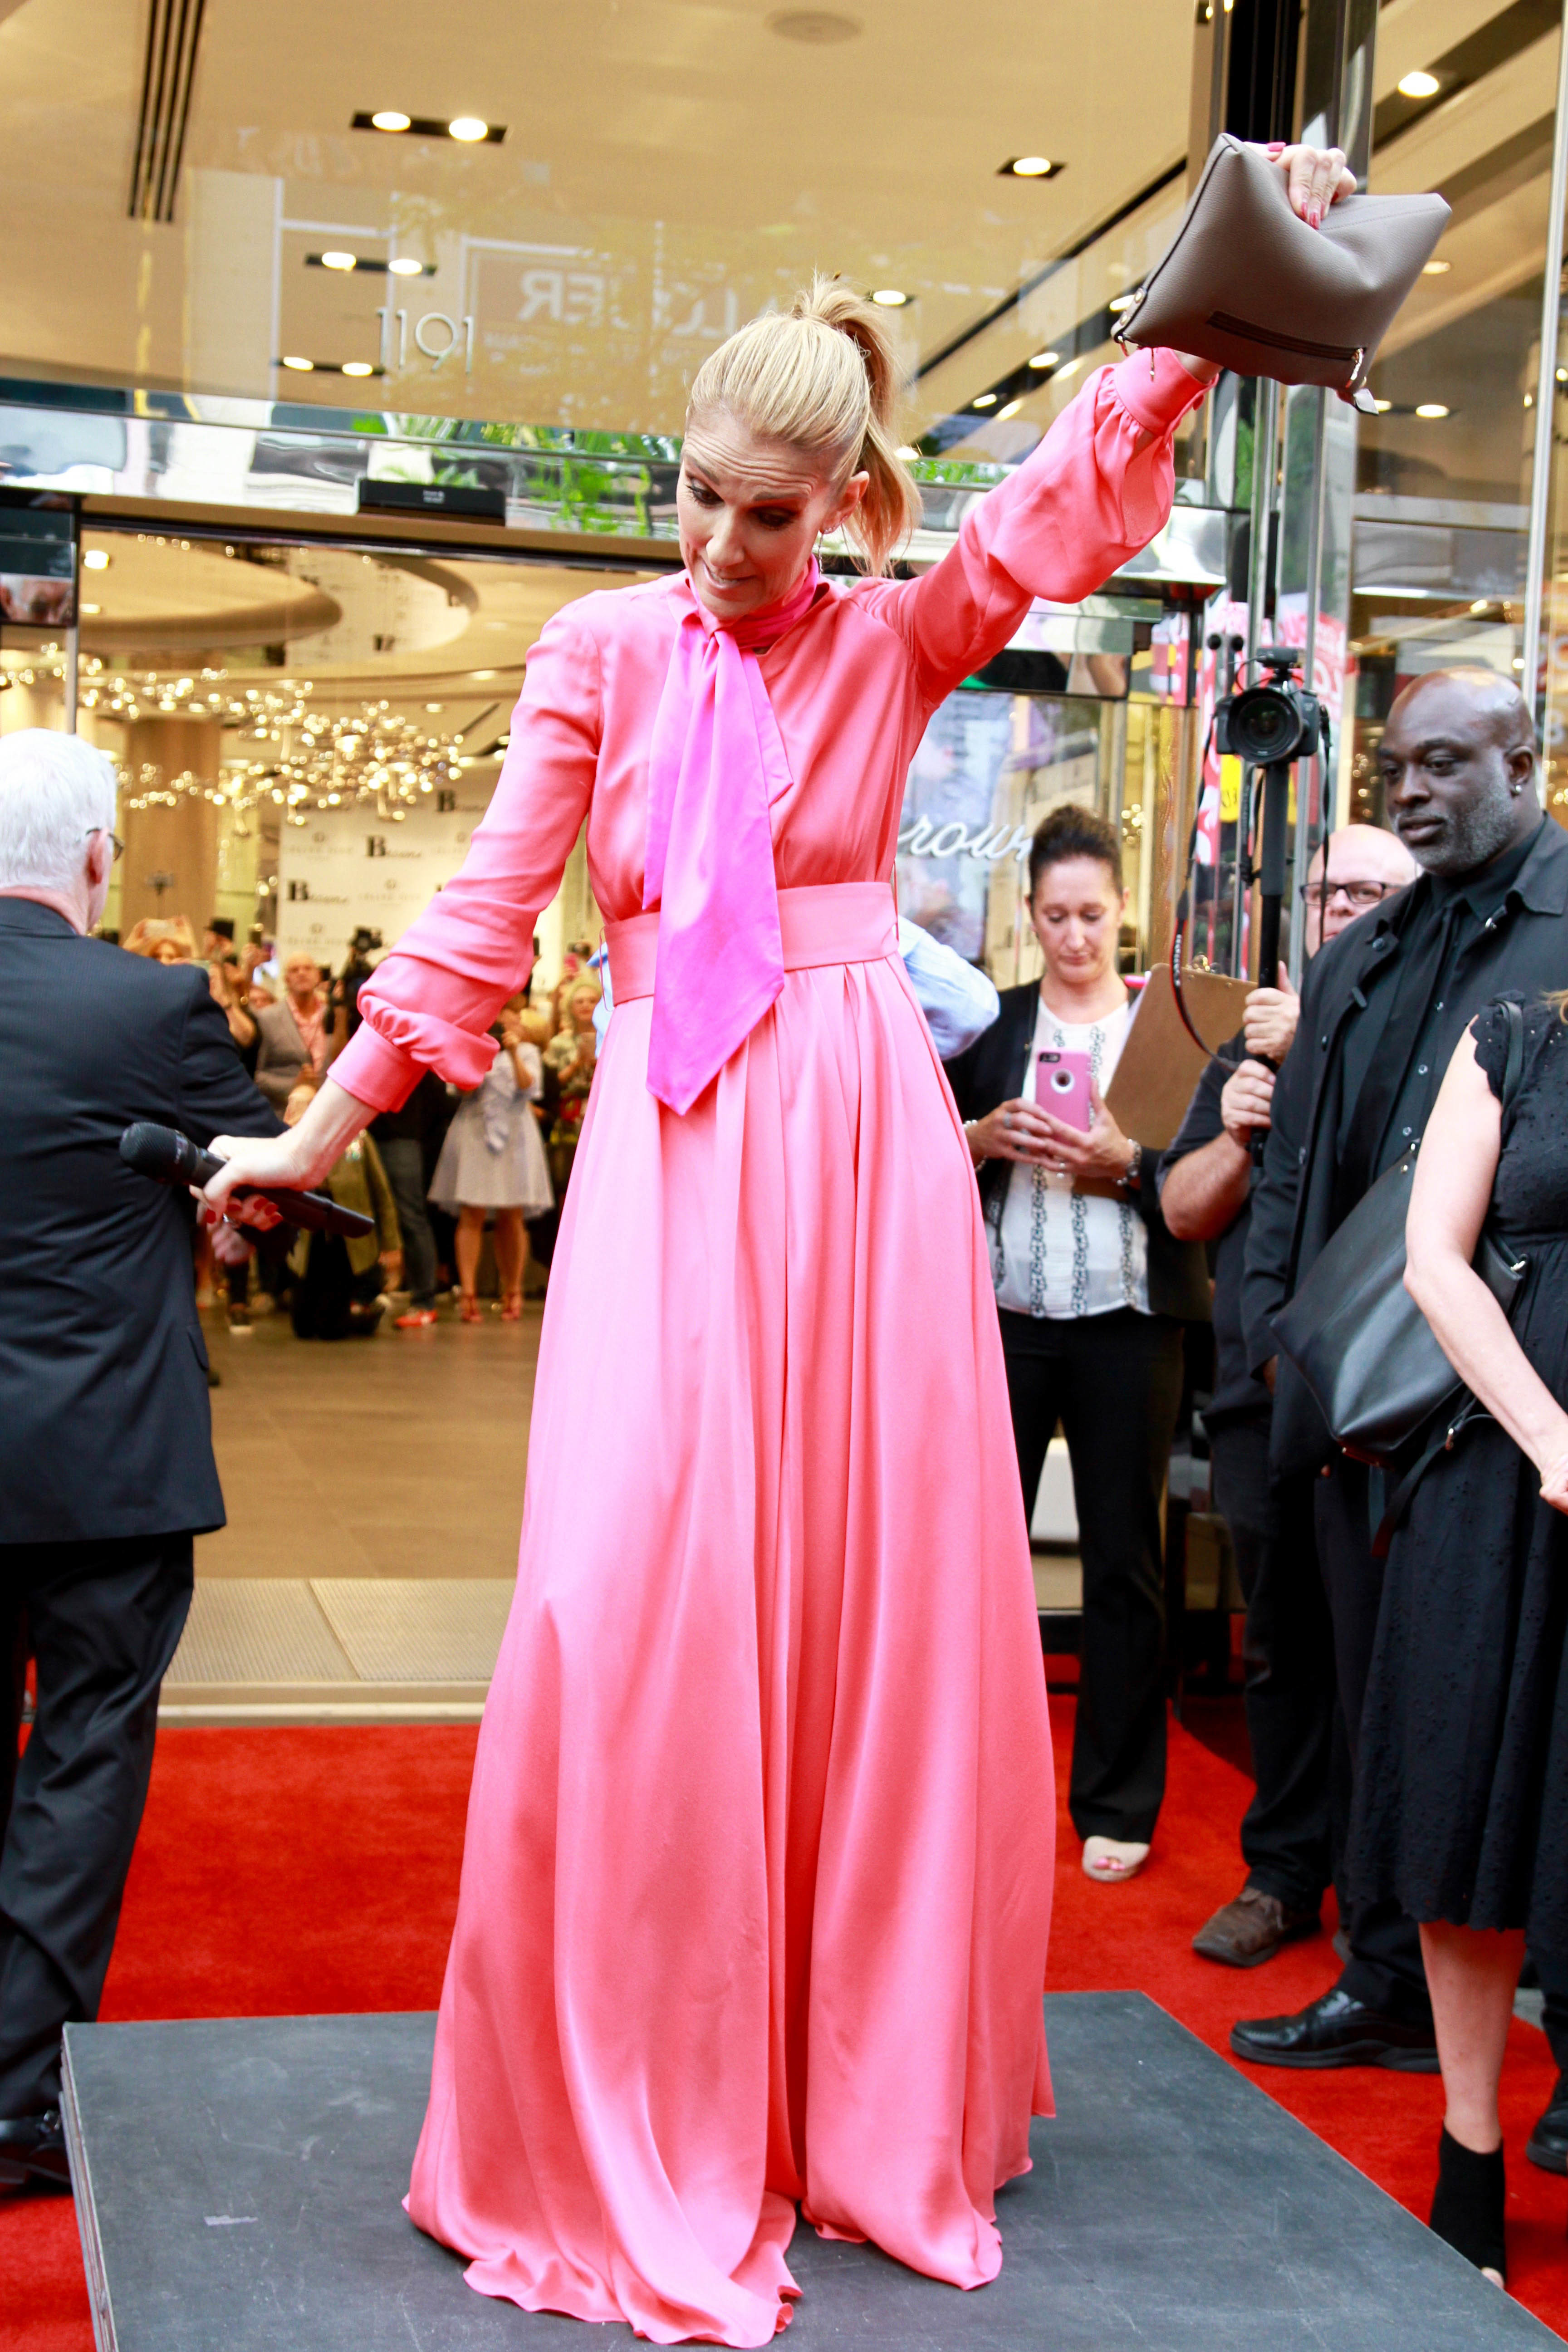 Celine Dion is mobbed by fans at Browns store in Montreal, Canada on Aug. 23, 2017.